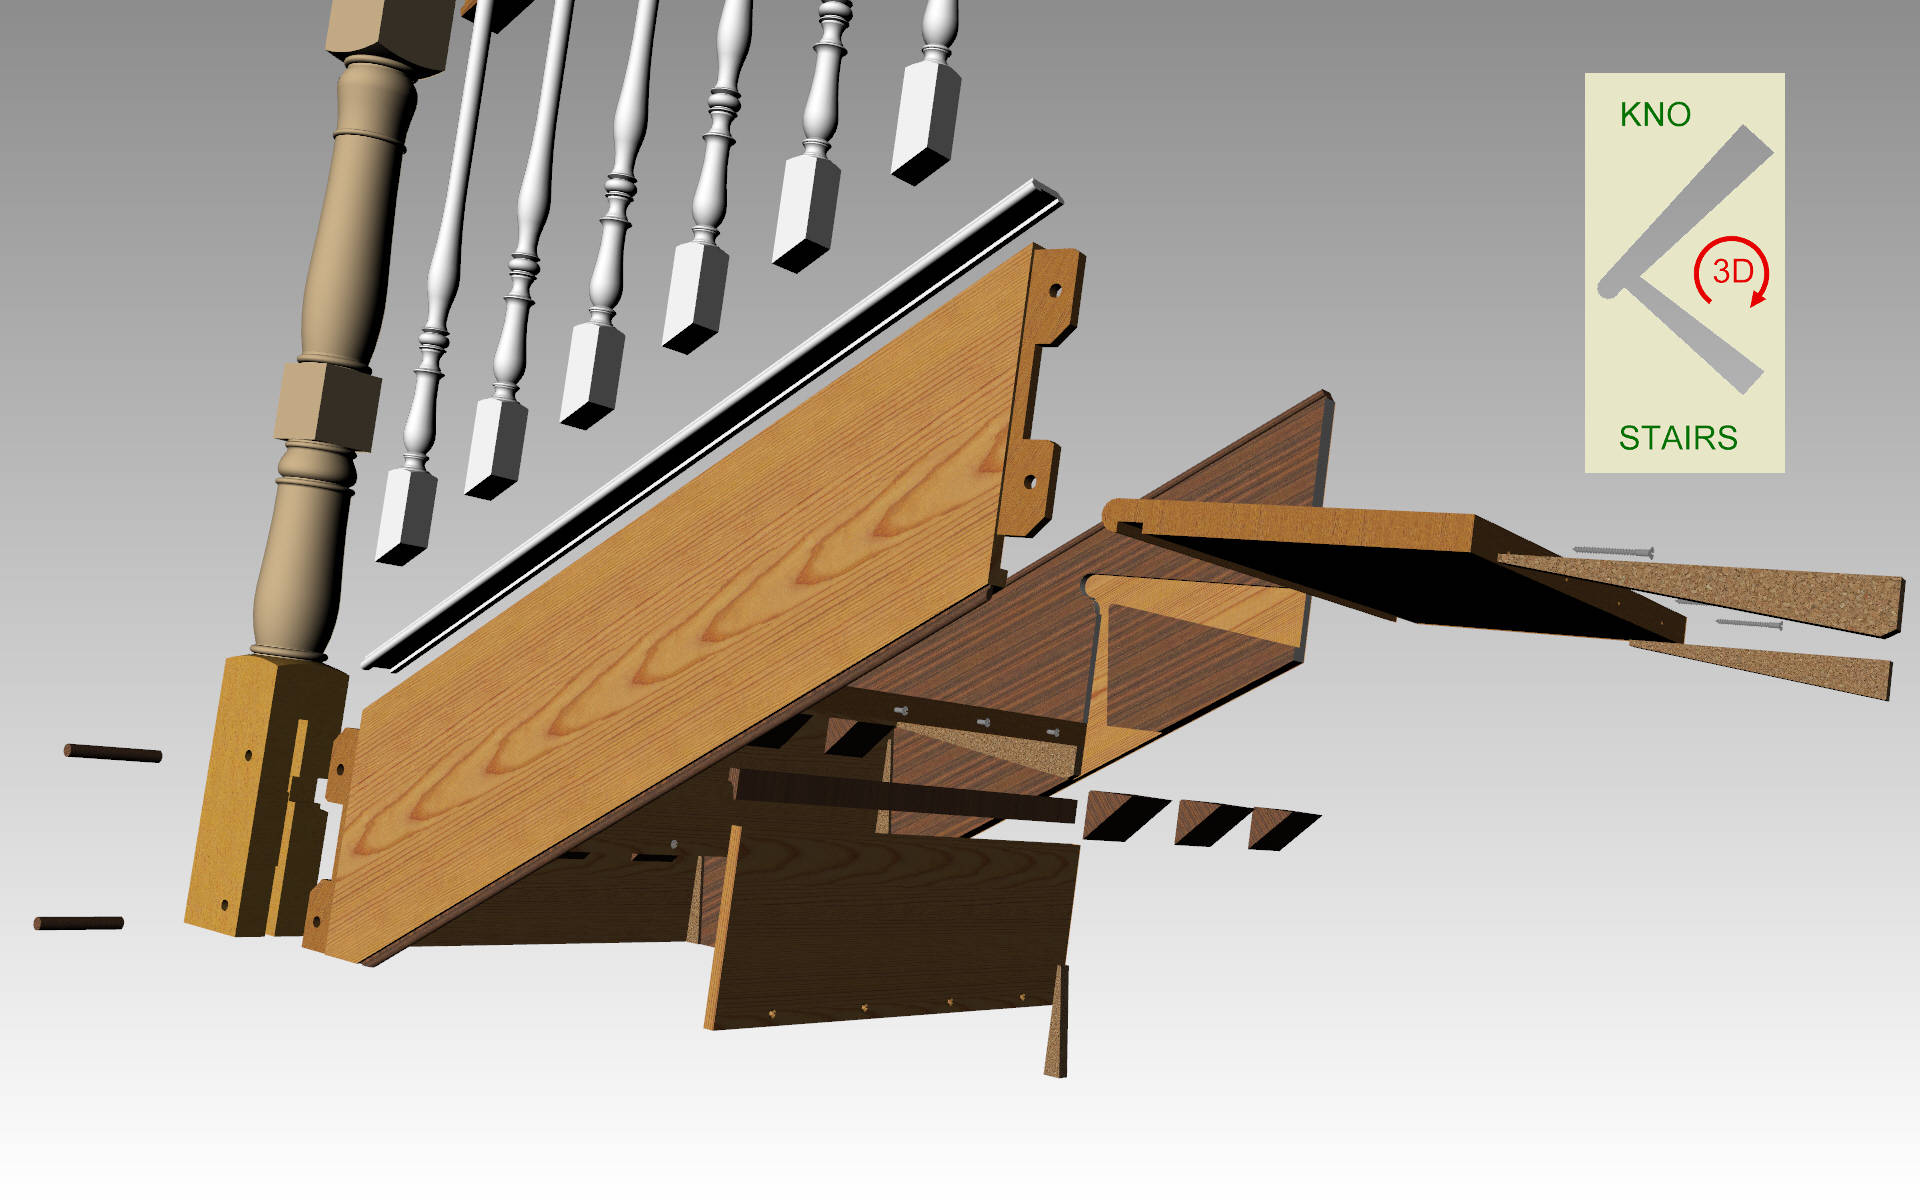 Staircase exploded view.